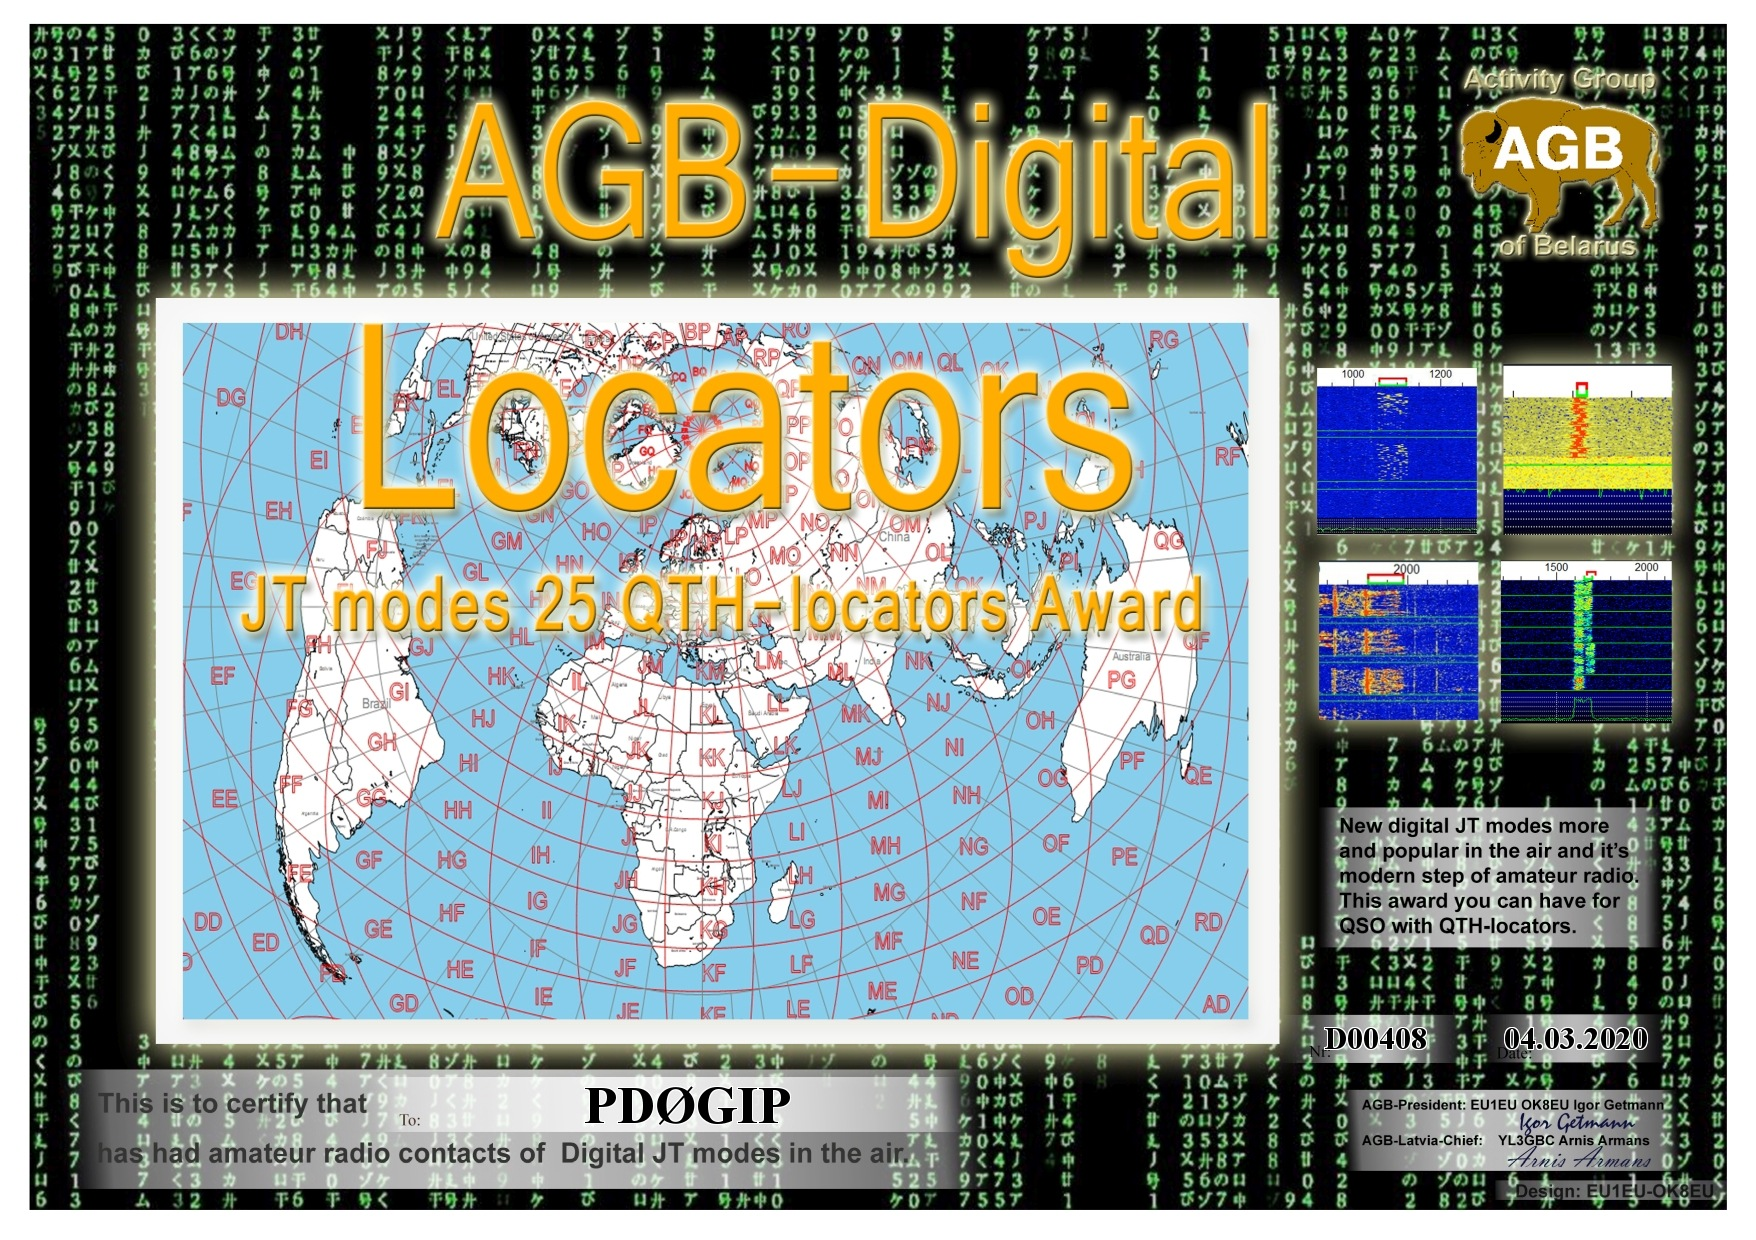 PD0GIP LOCATORS BASIC 25 AGB